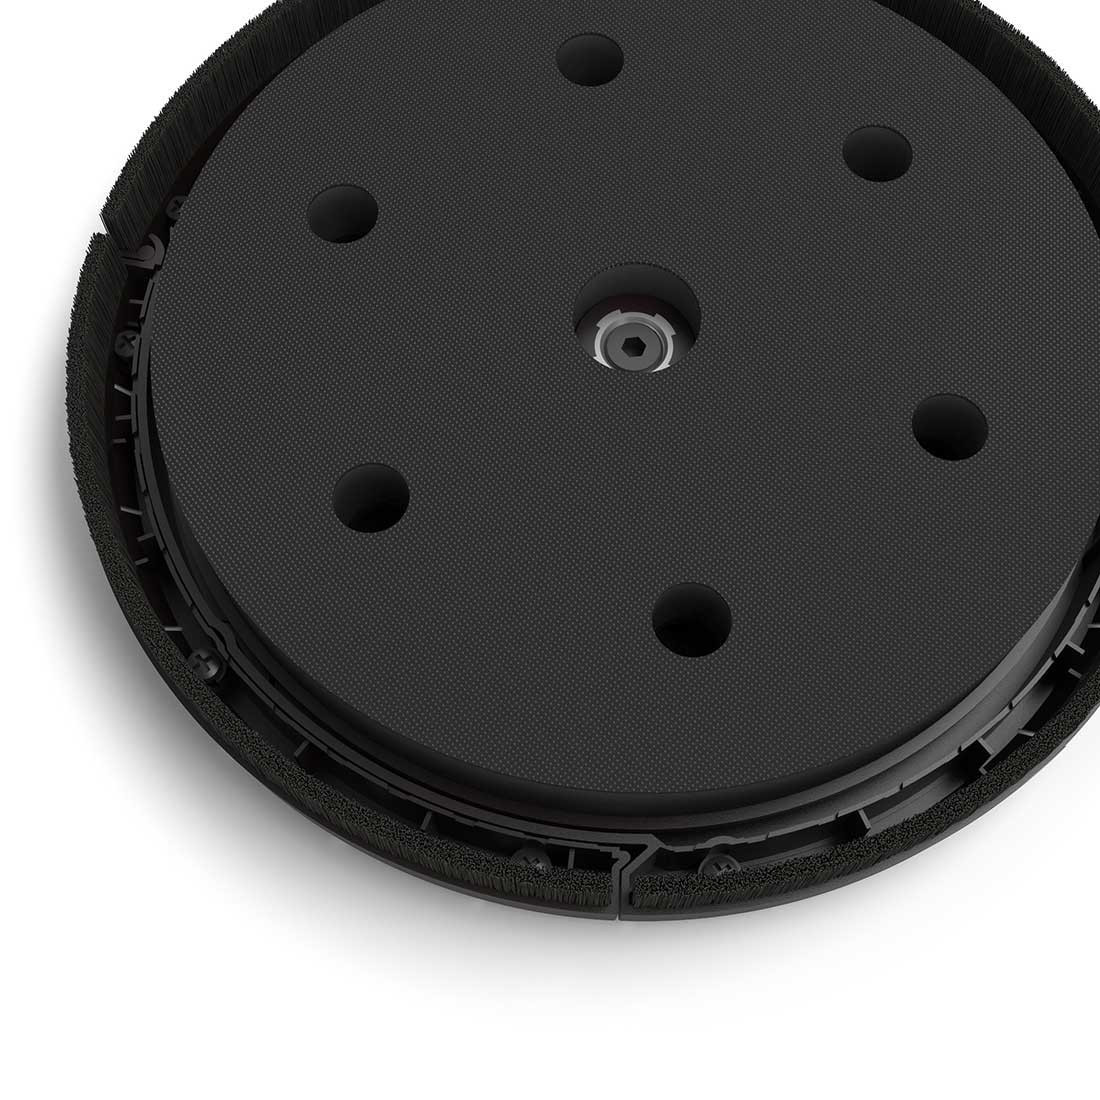 MENZER LHS 225 perforated sanding disc